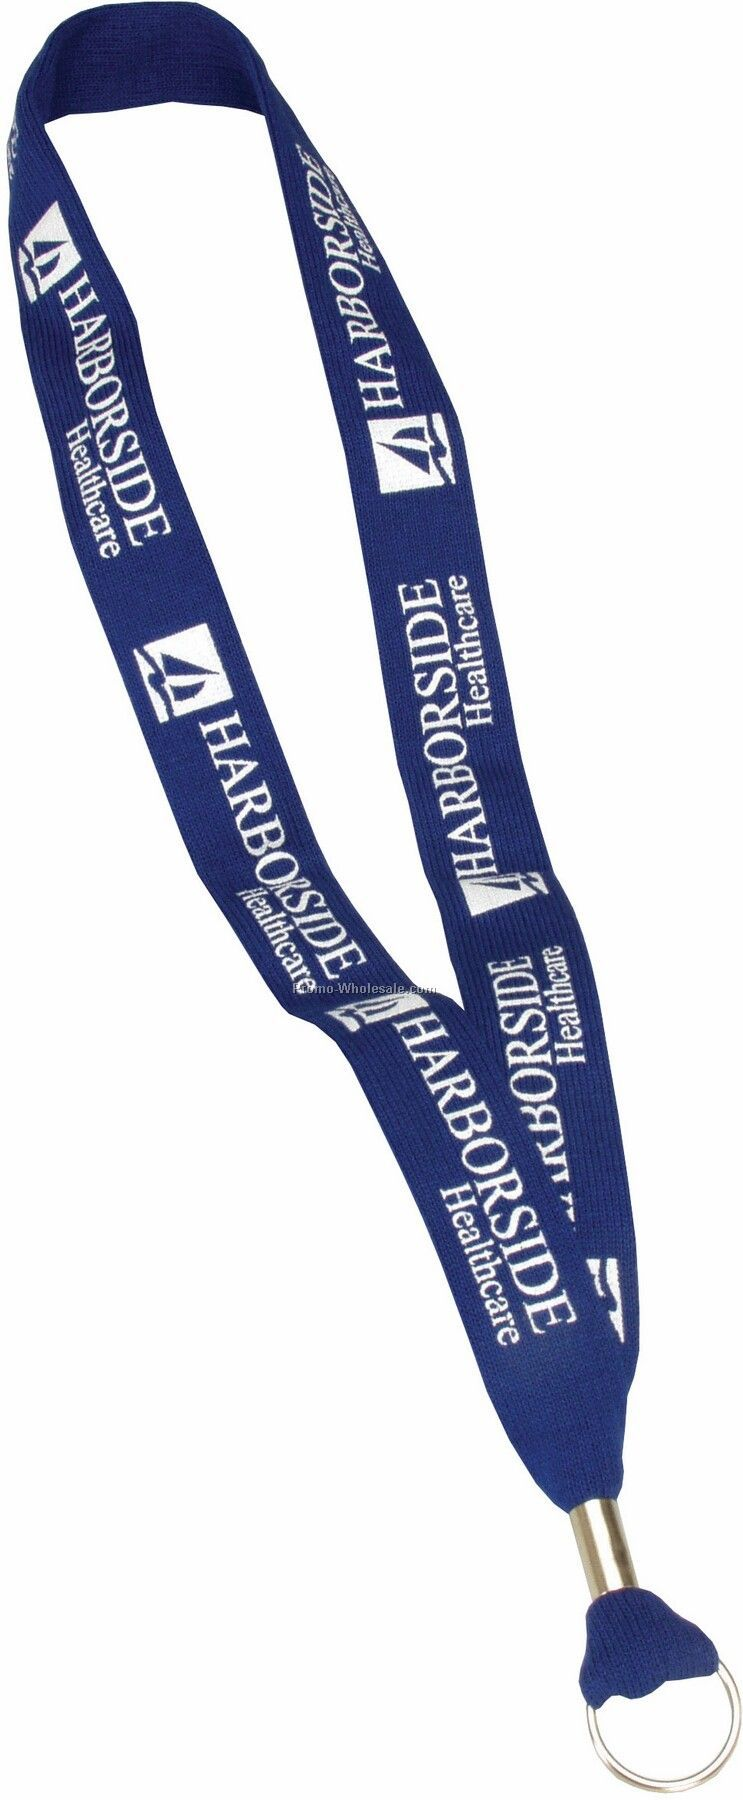 "1""x34"" 2 Ply Cotton Lanyards - Next Day"